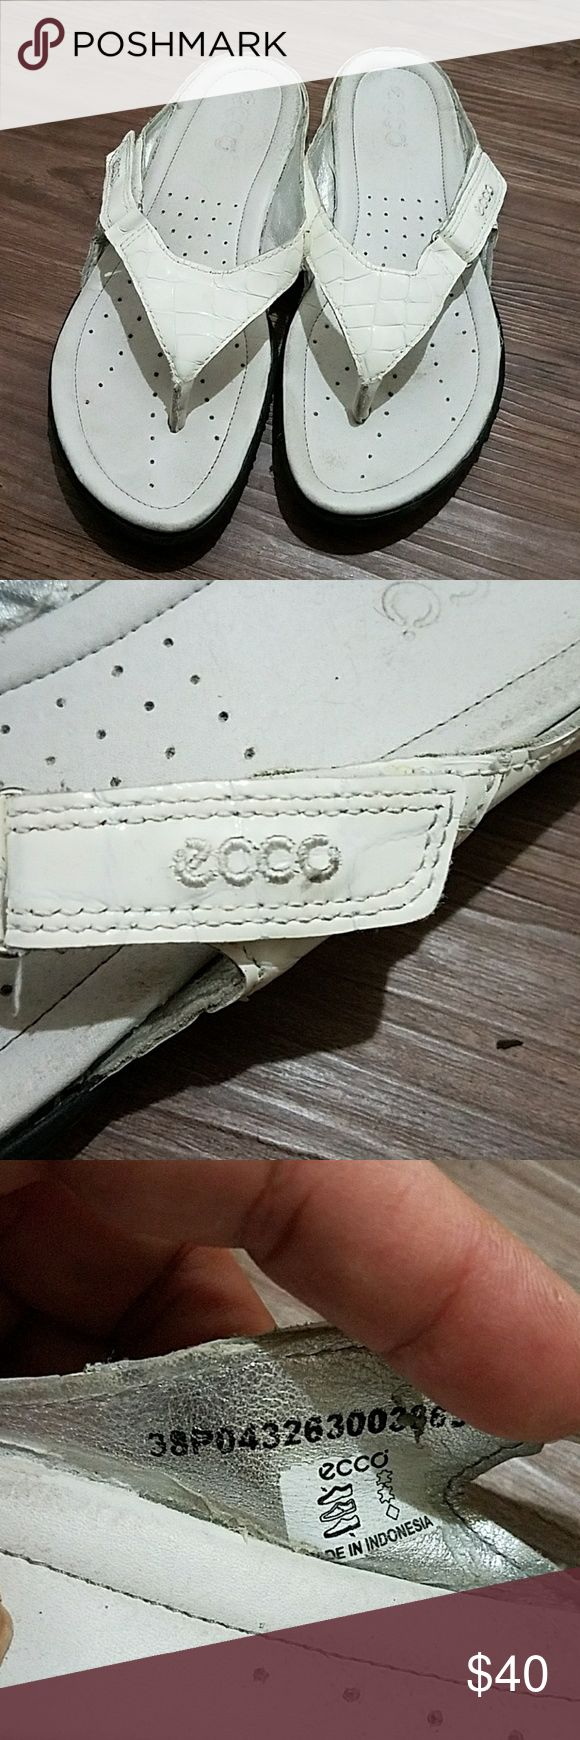 Ecco Sandals Whits patented leather with side velcro adjustability very comfy Ecco Shoes Sandals